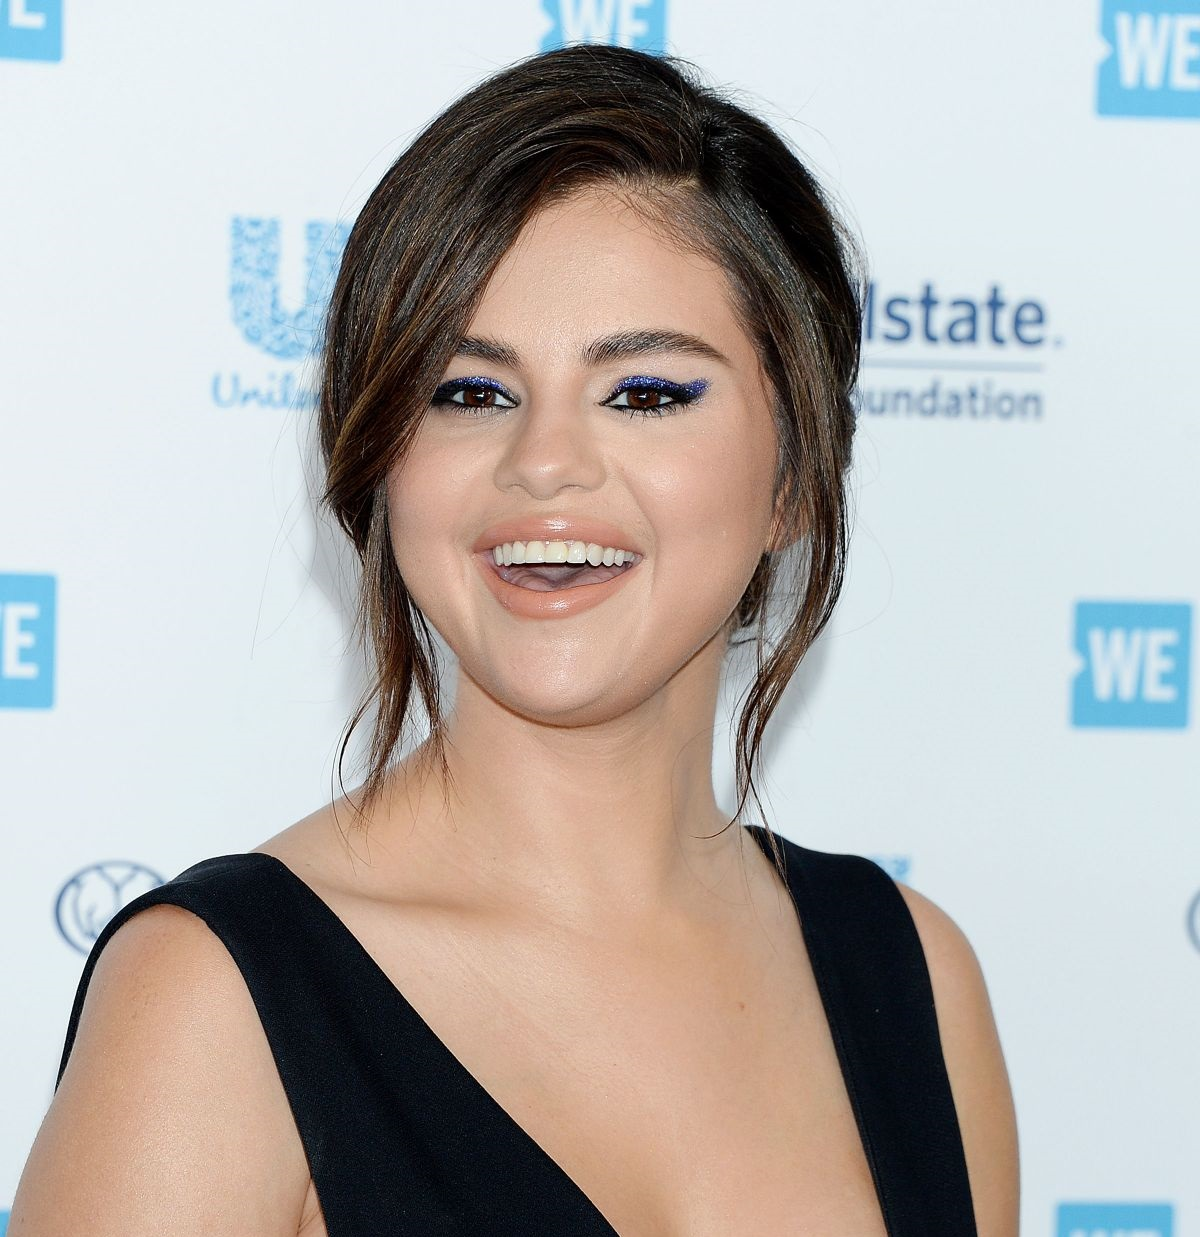 Smiling Selena Gomez Hollywood Actress Wallpapers